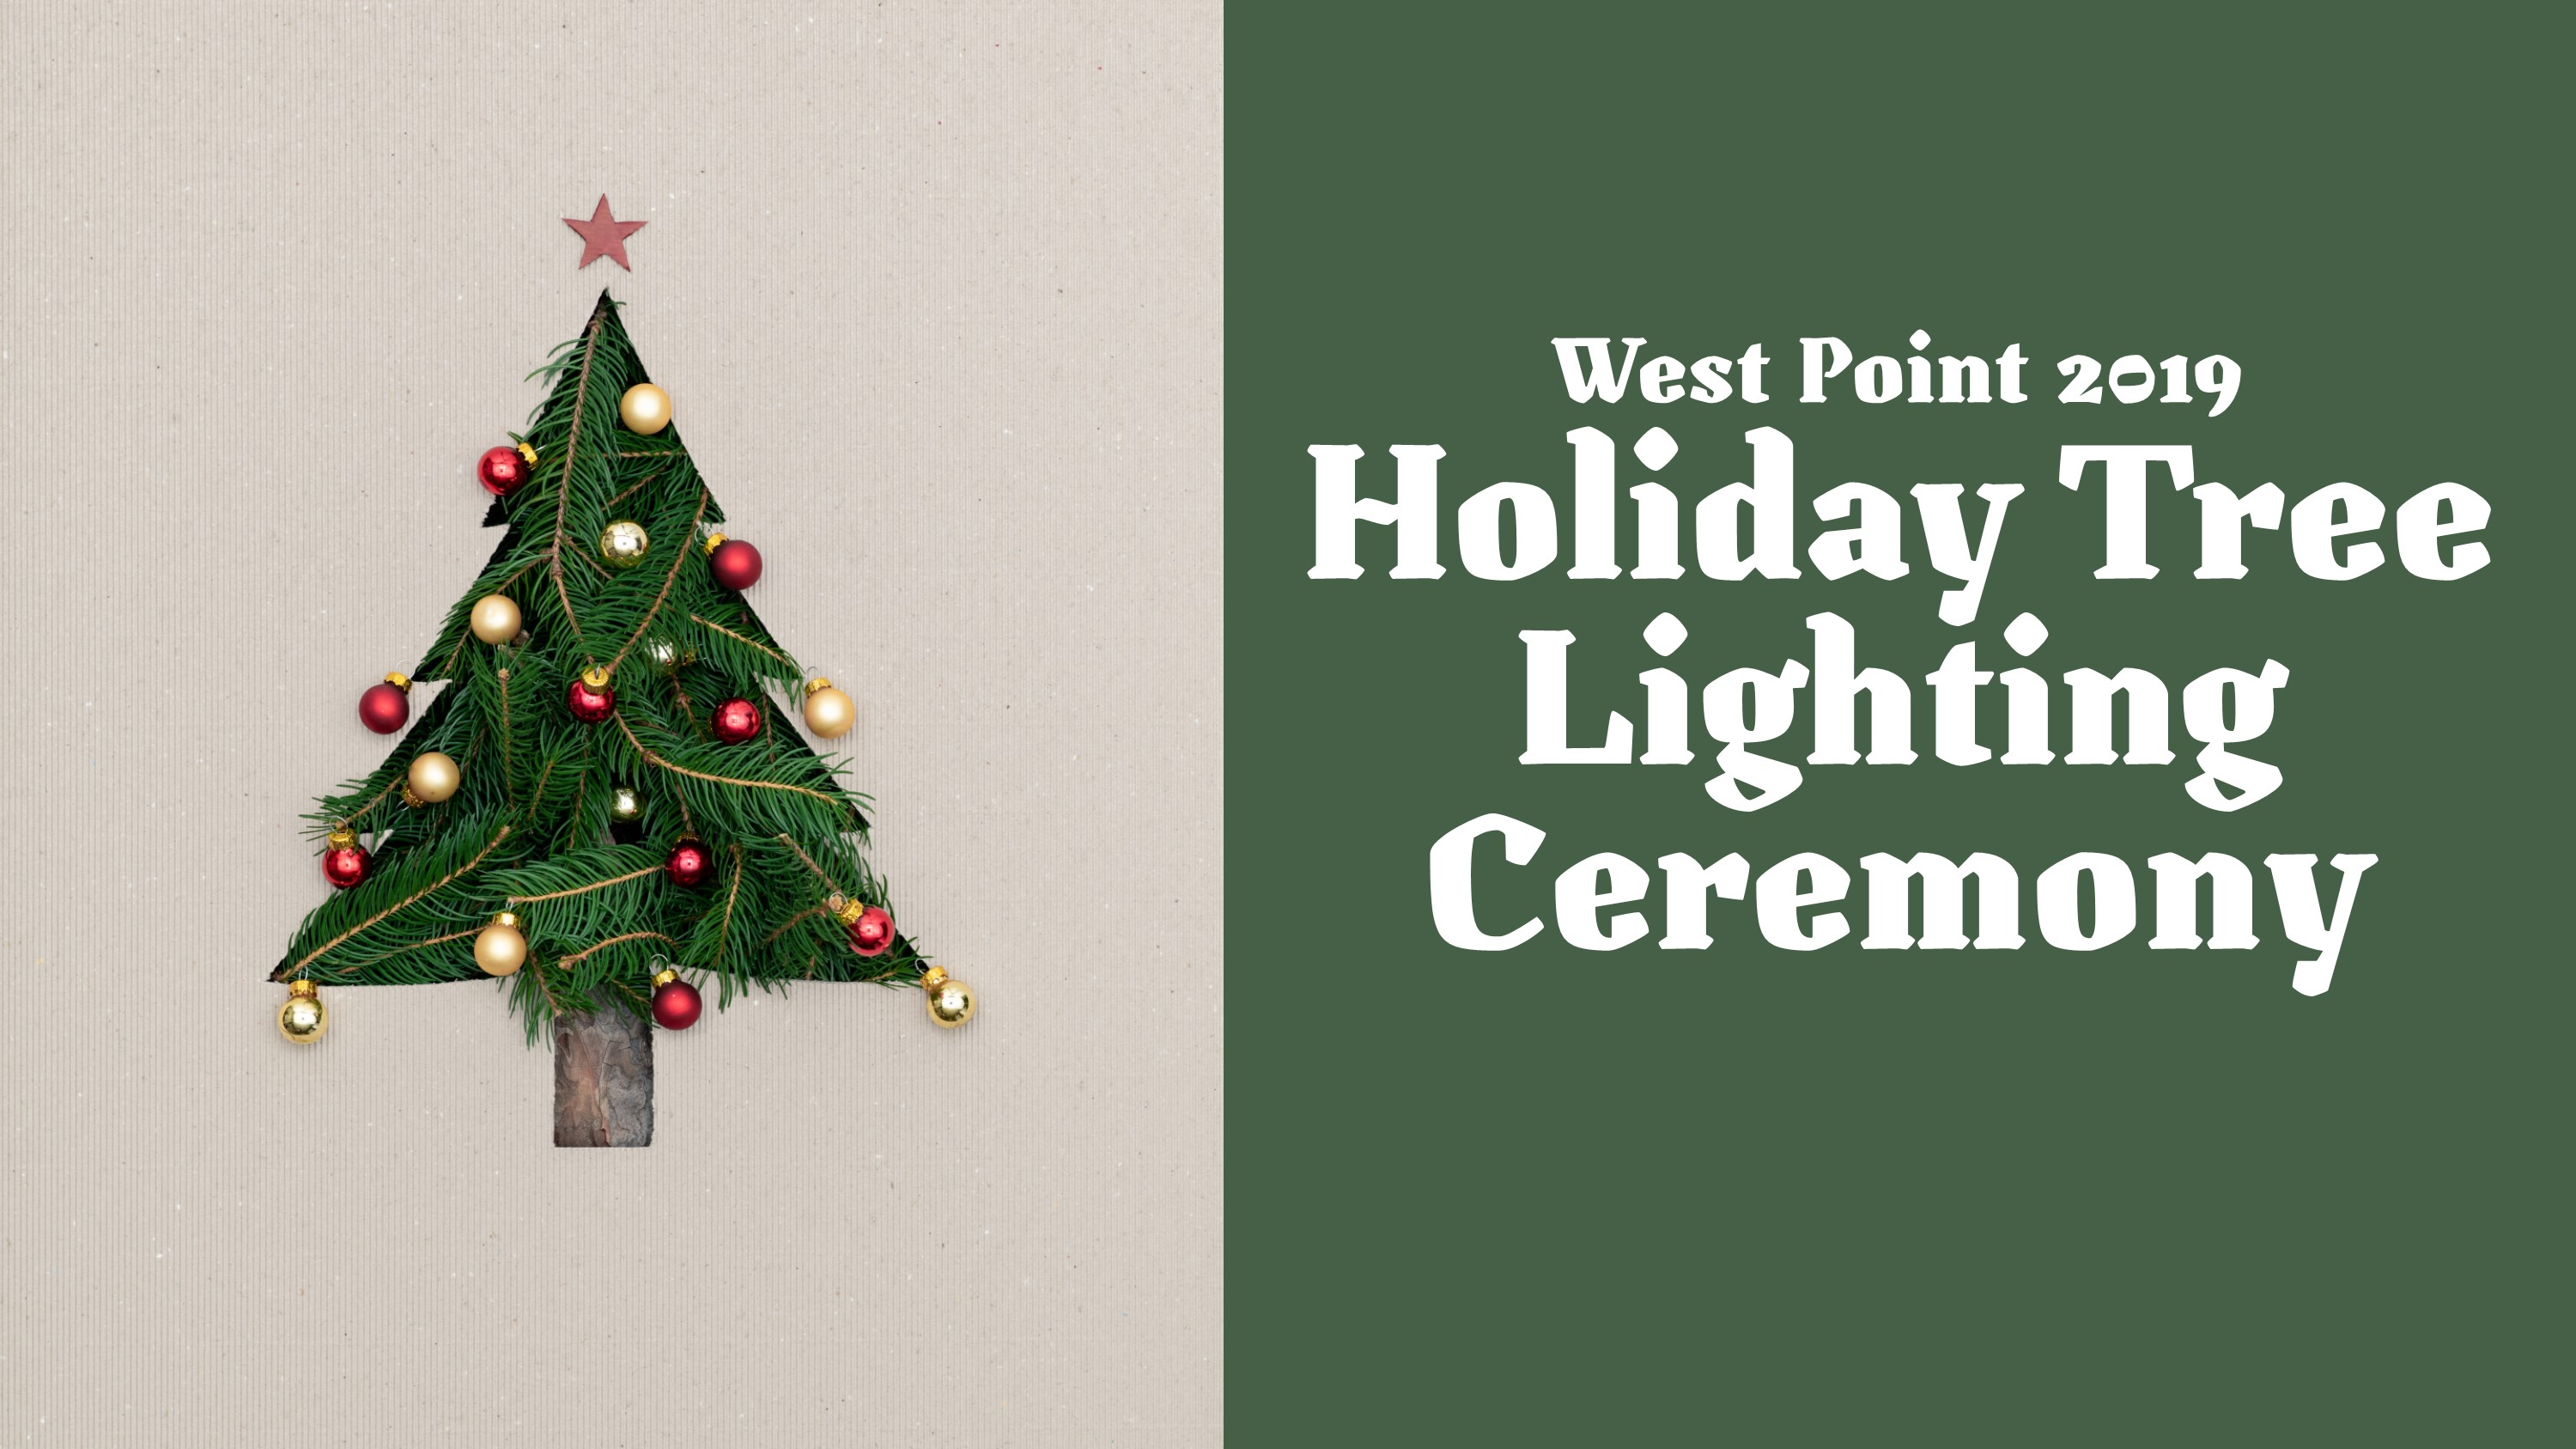 West Point 2019 Holiday Tree Lighting Ceremony